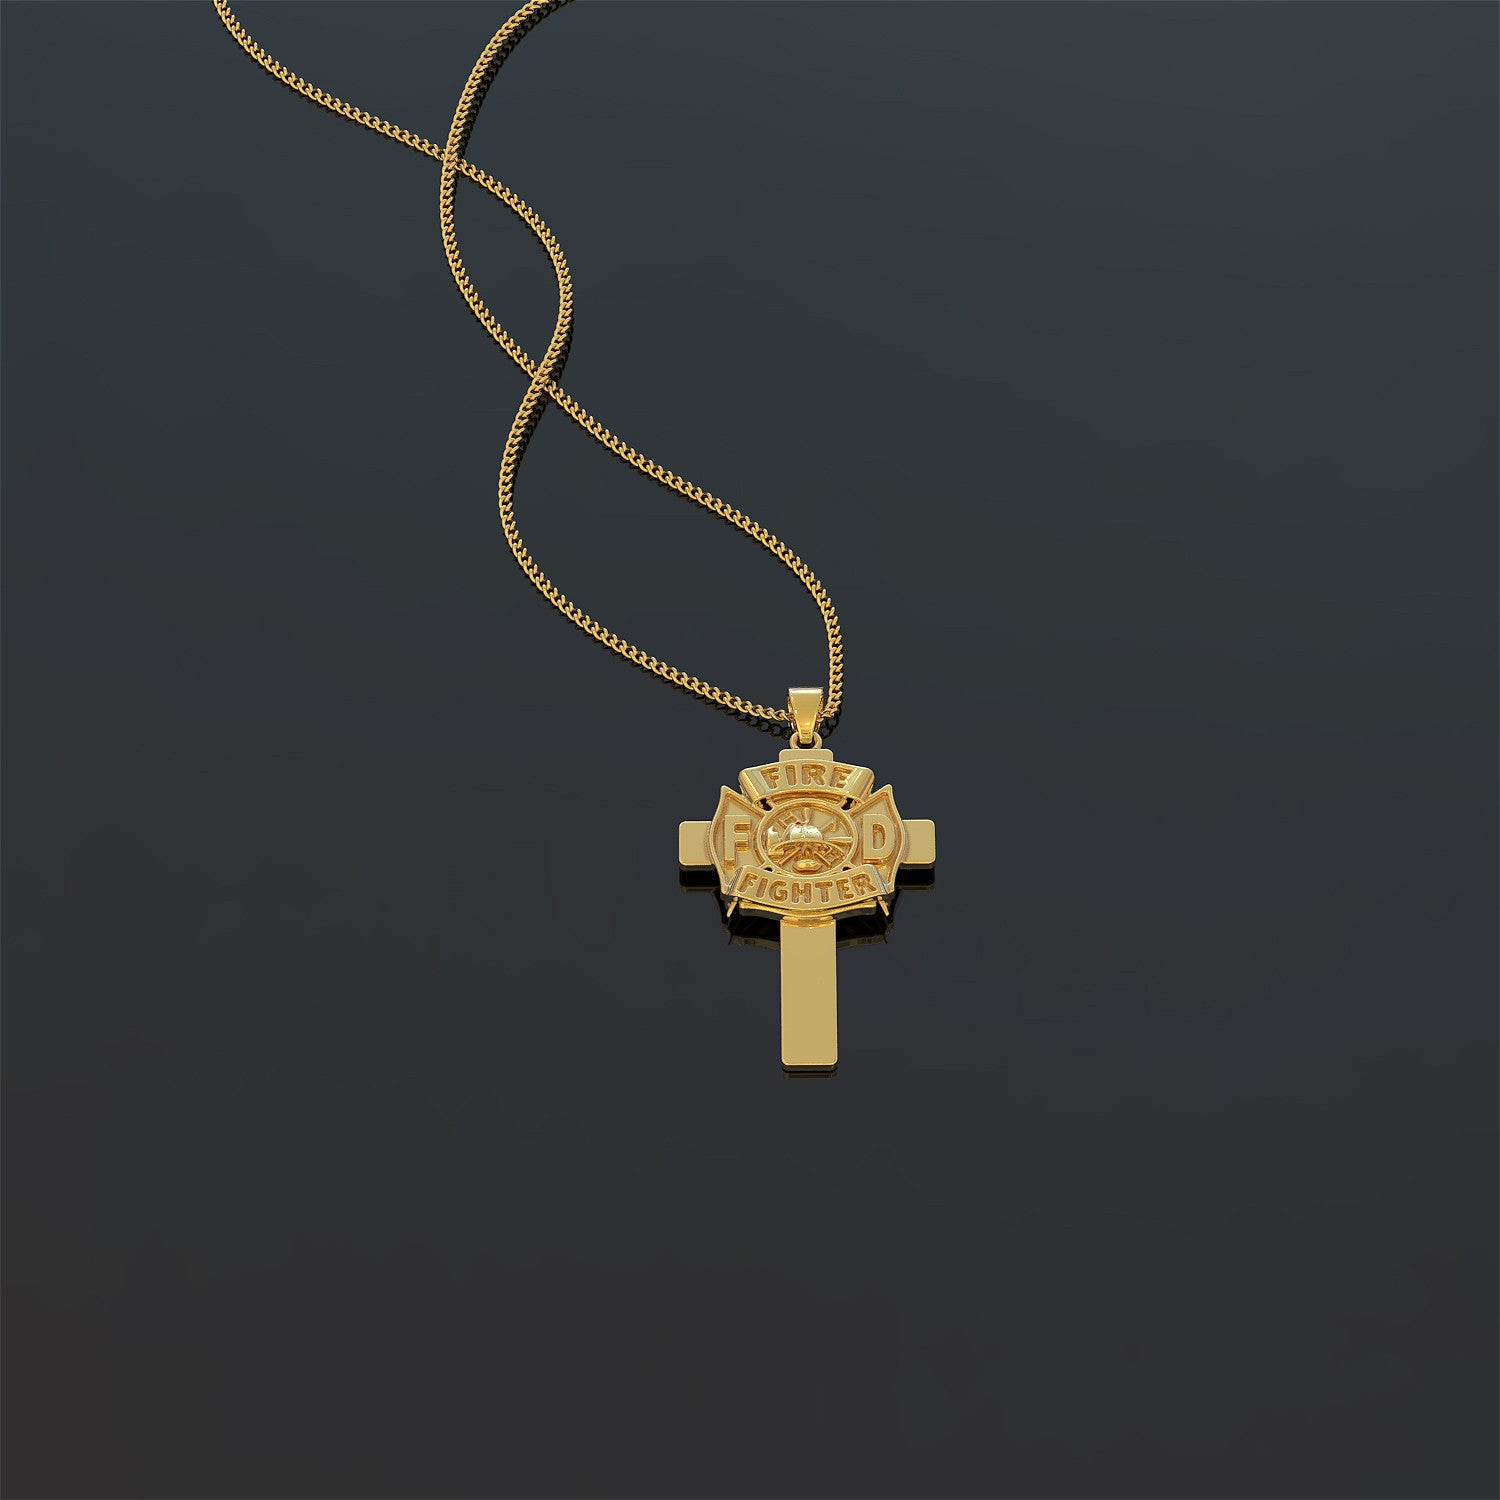 Firefighter Cross Necklace